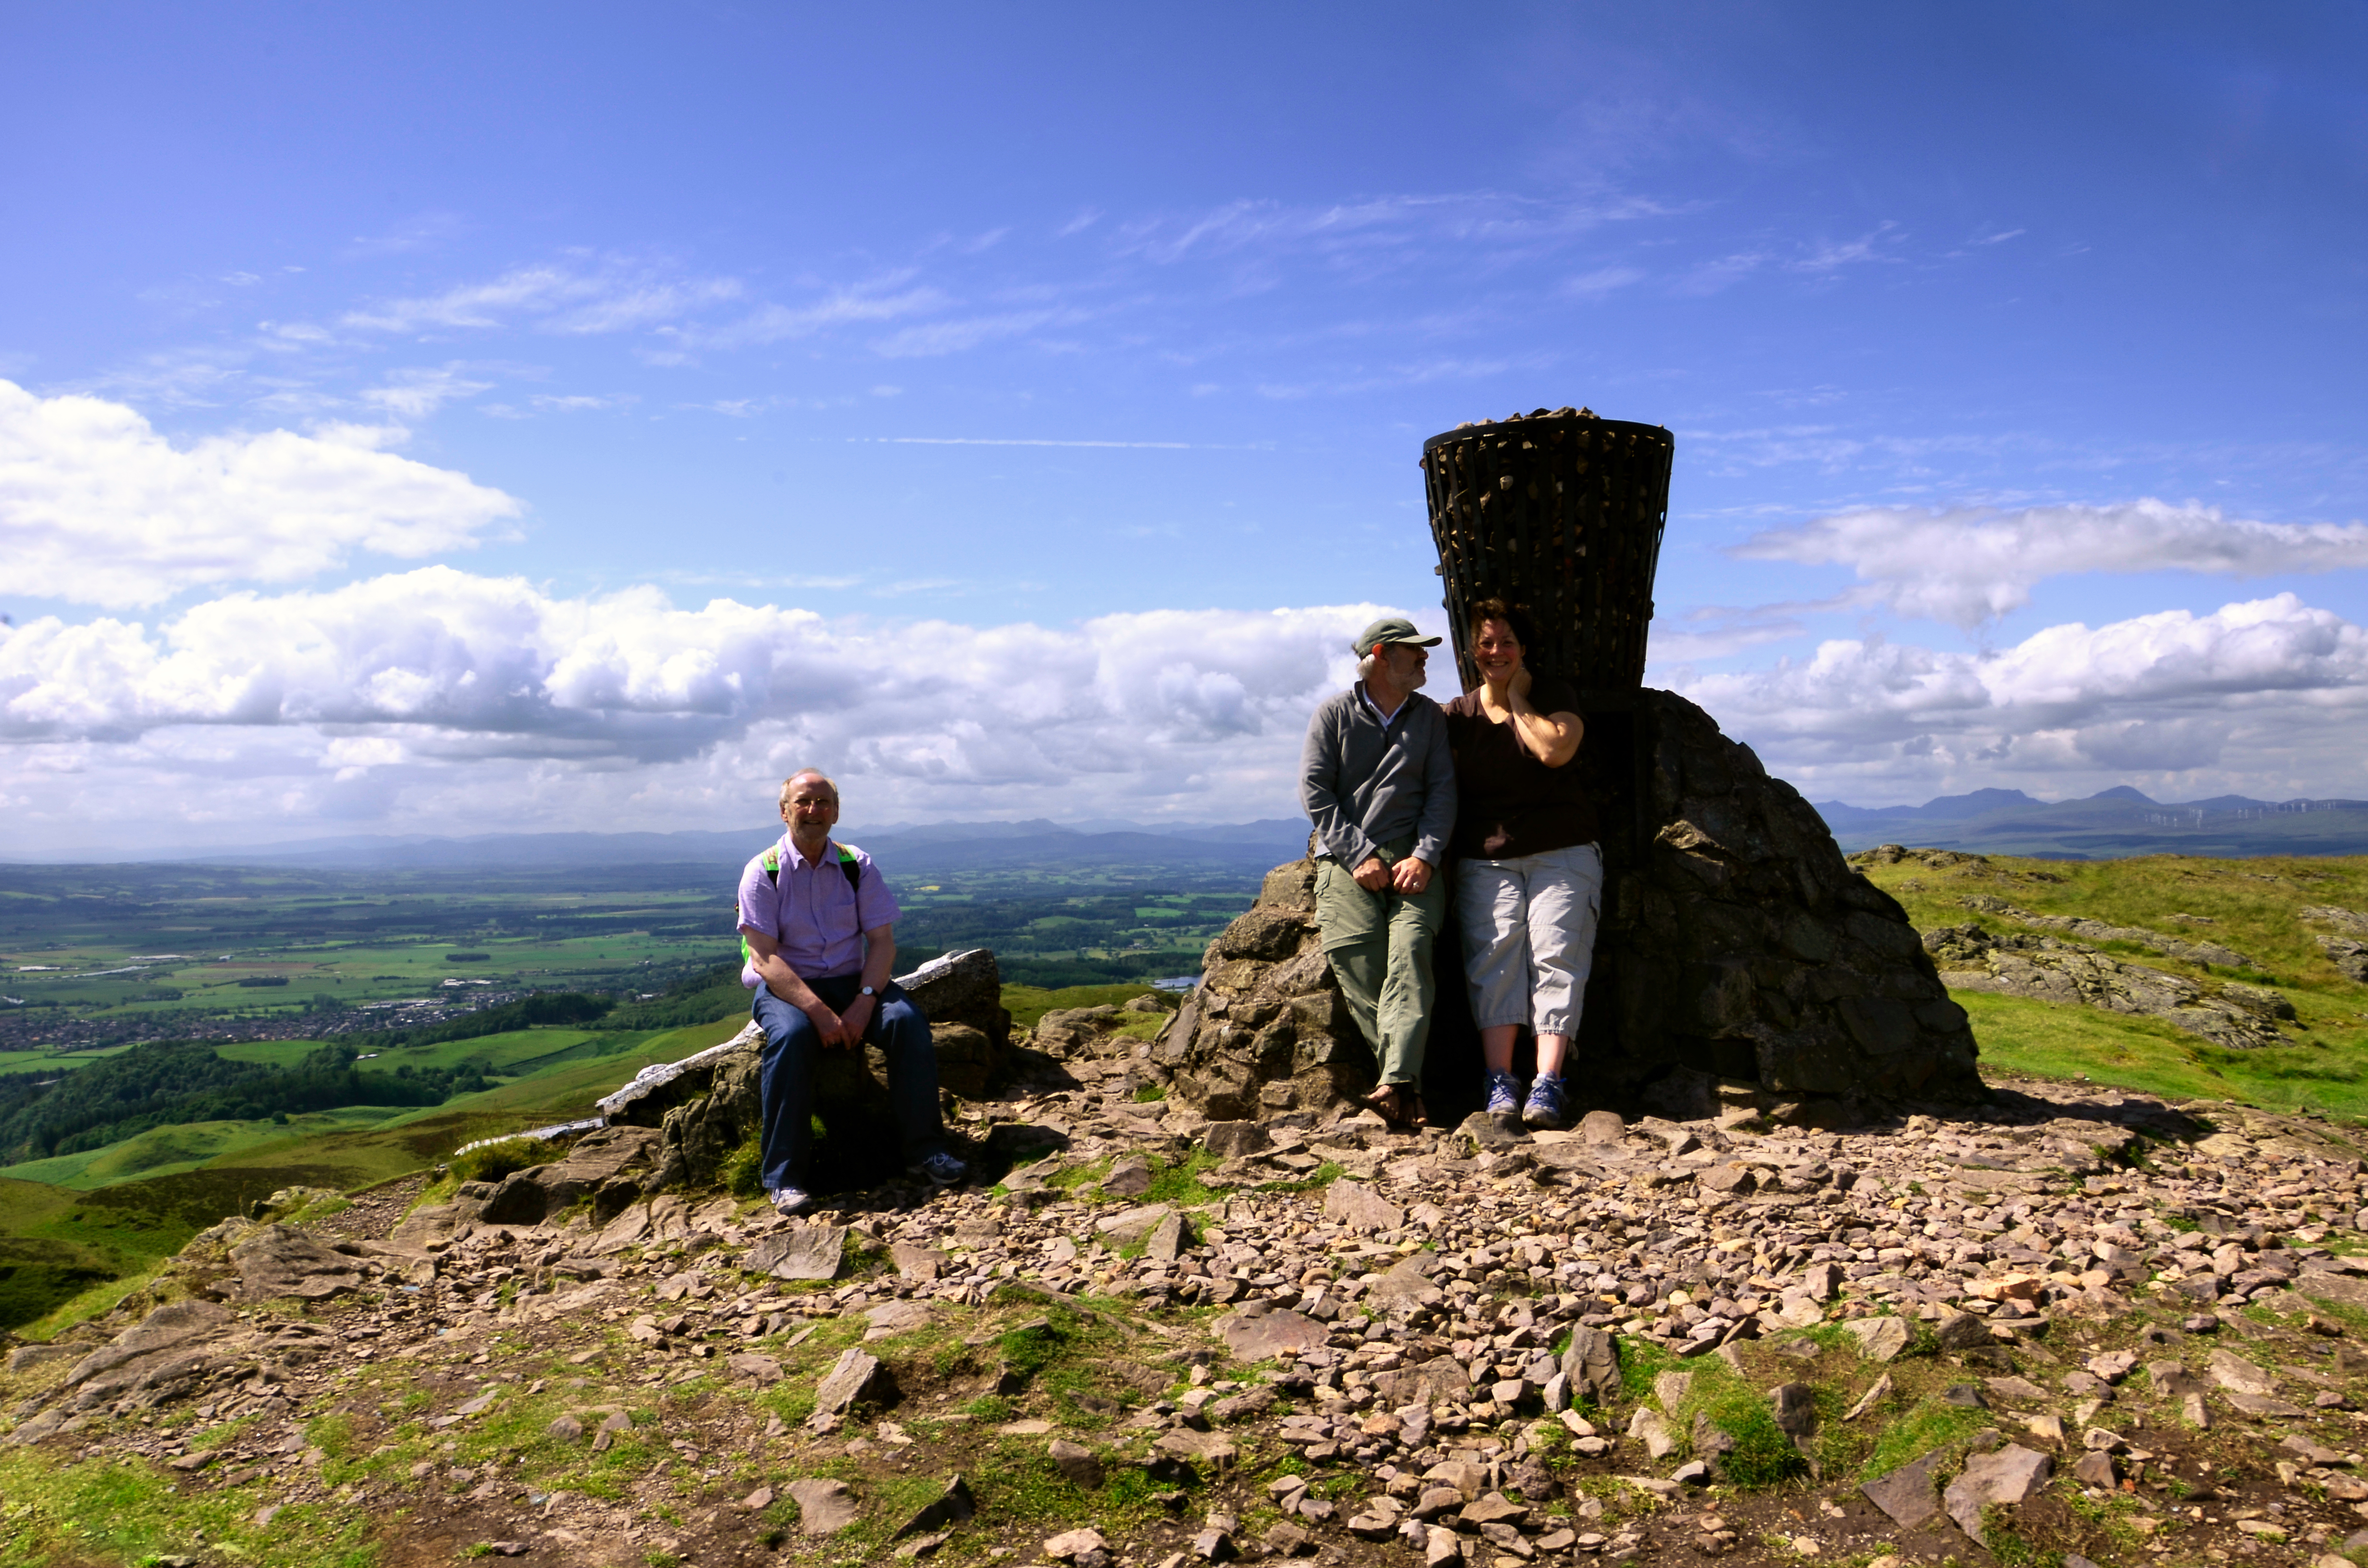 Keith, Gary and Ginger - Dumyat, Stirling, Scotland by Gary Allman